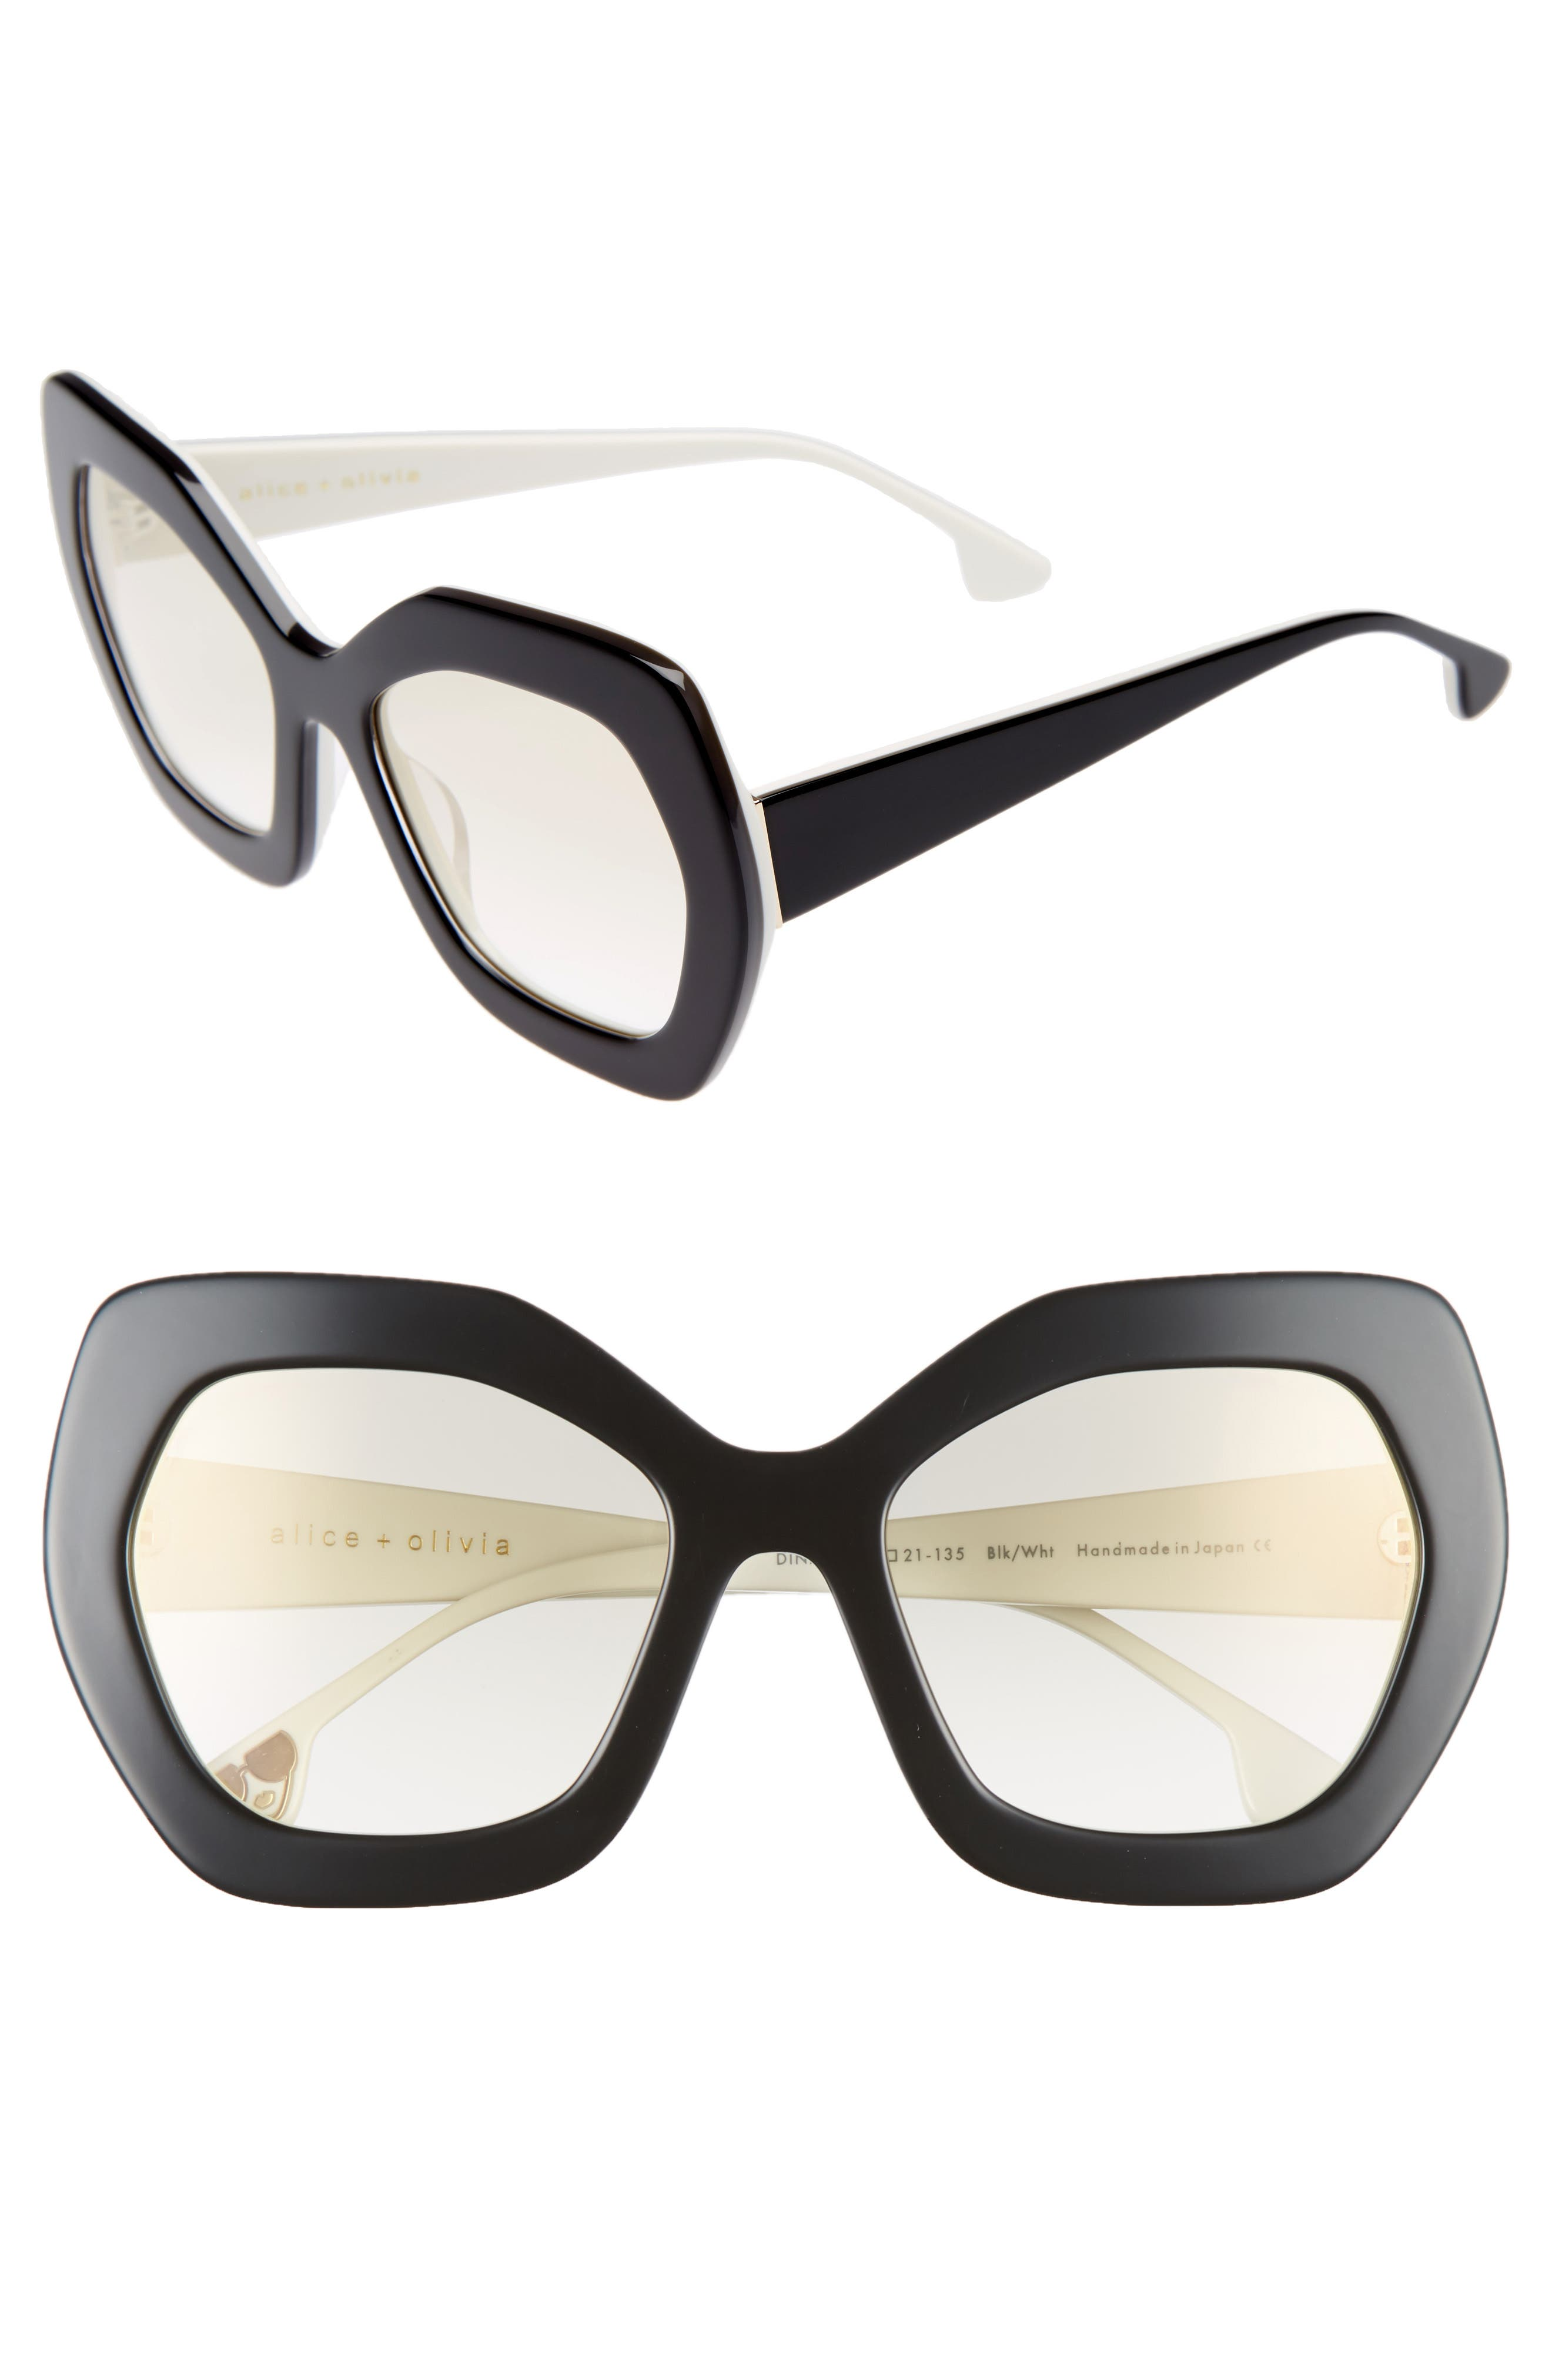 Dinah 55mm Butterfly Sunglasses,                             Main thumbnail 1, color,                             001